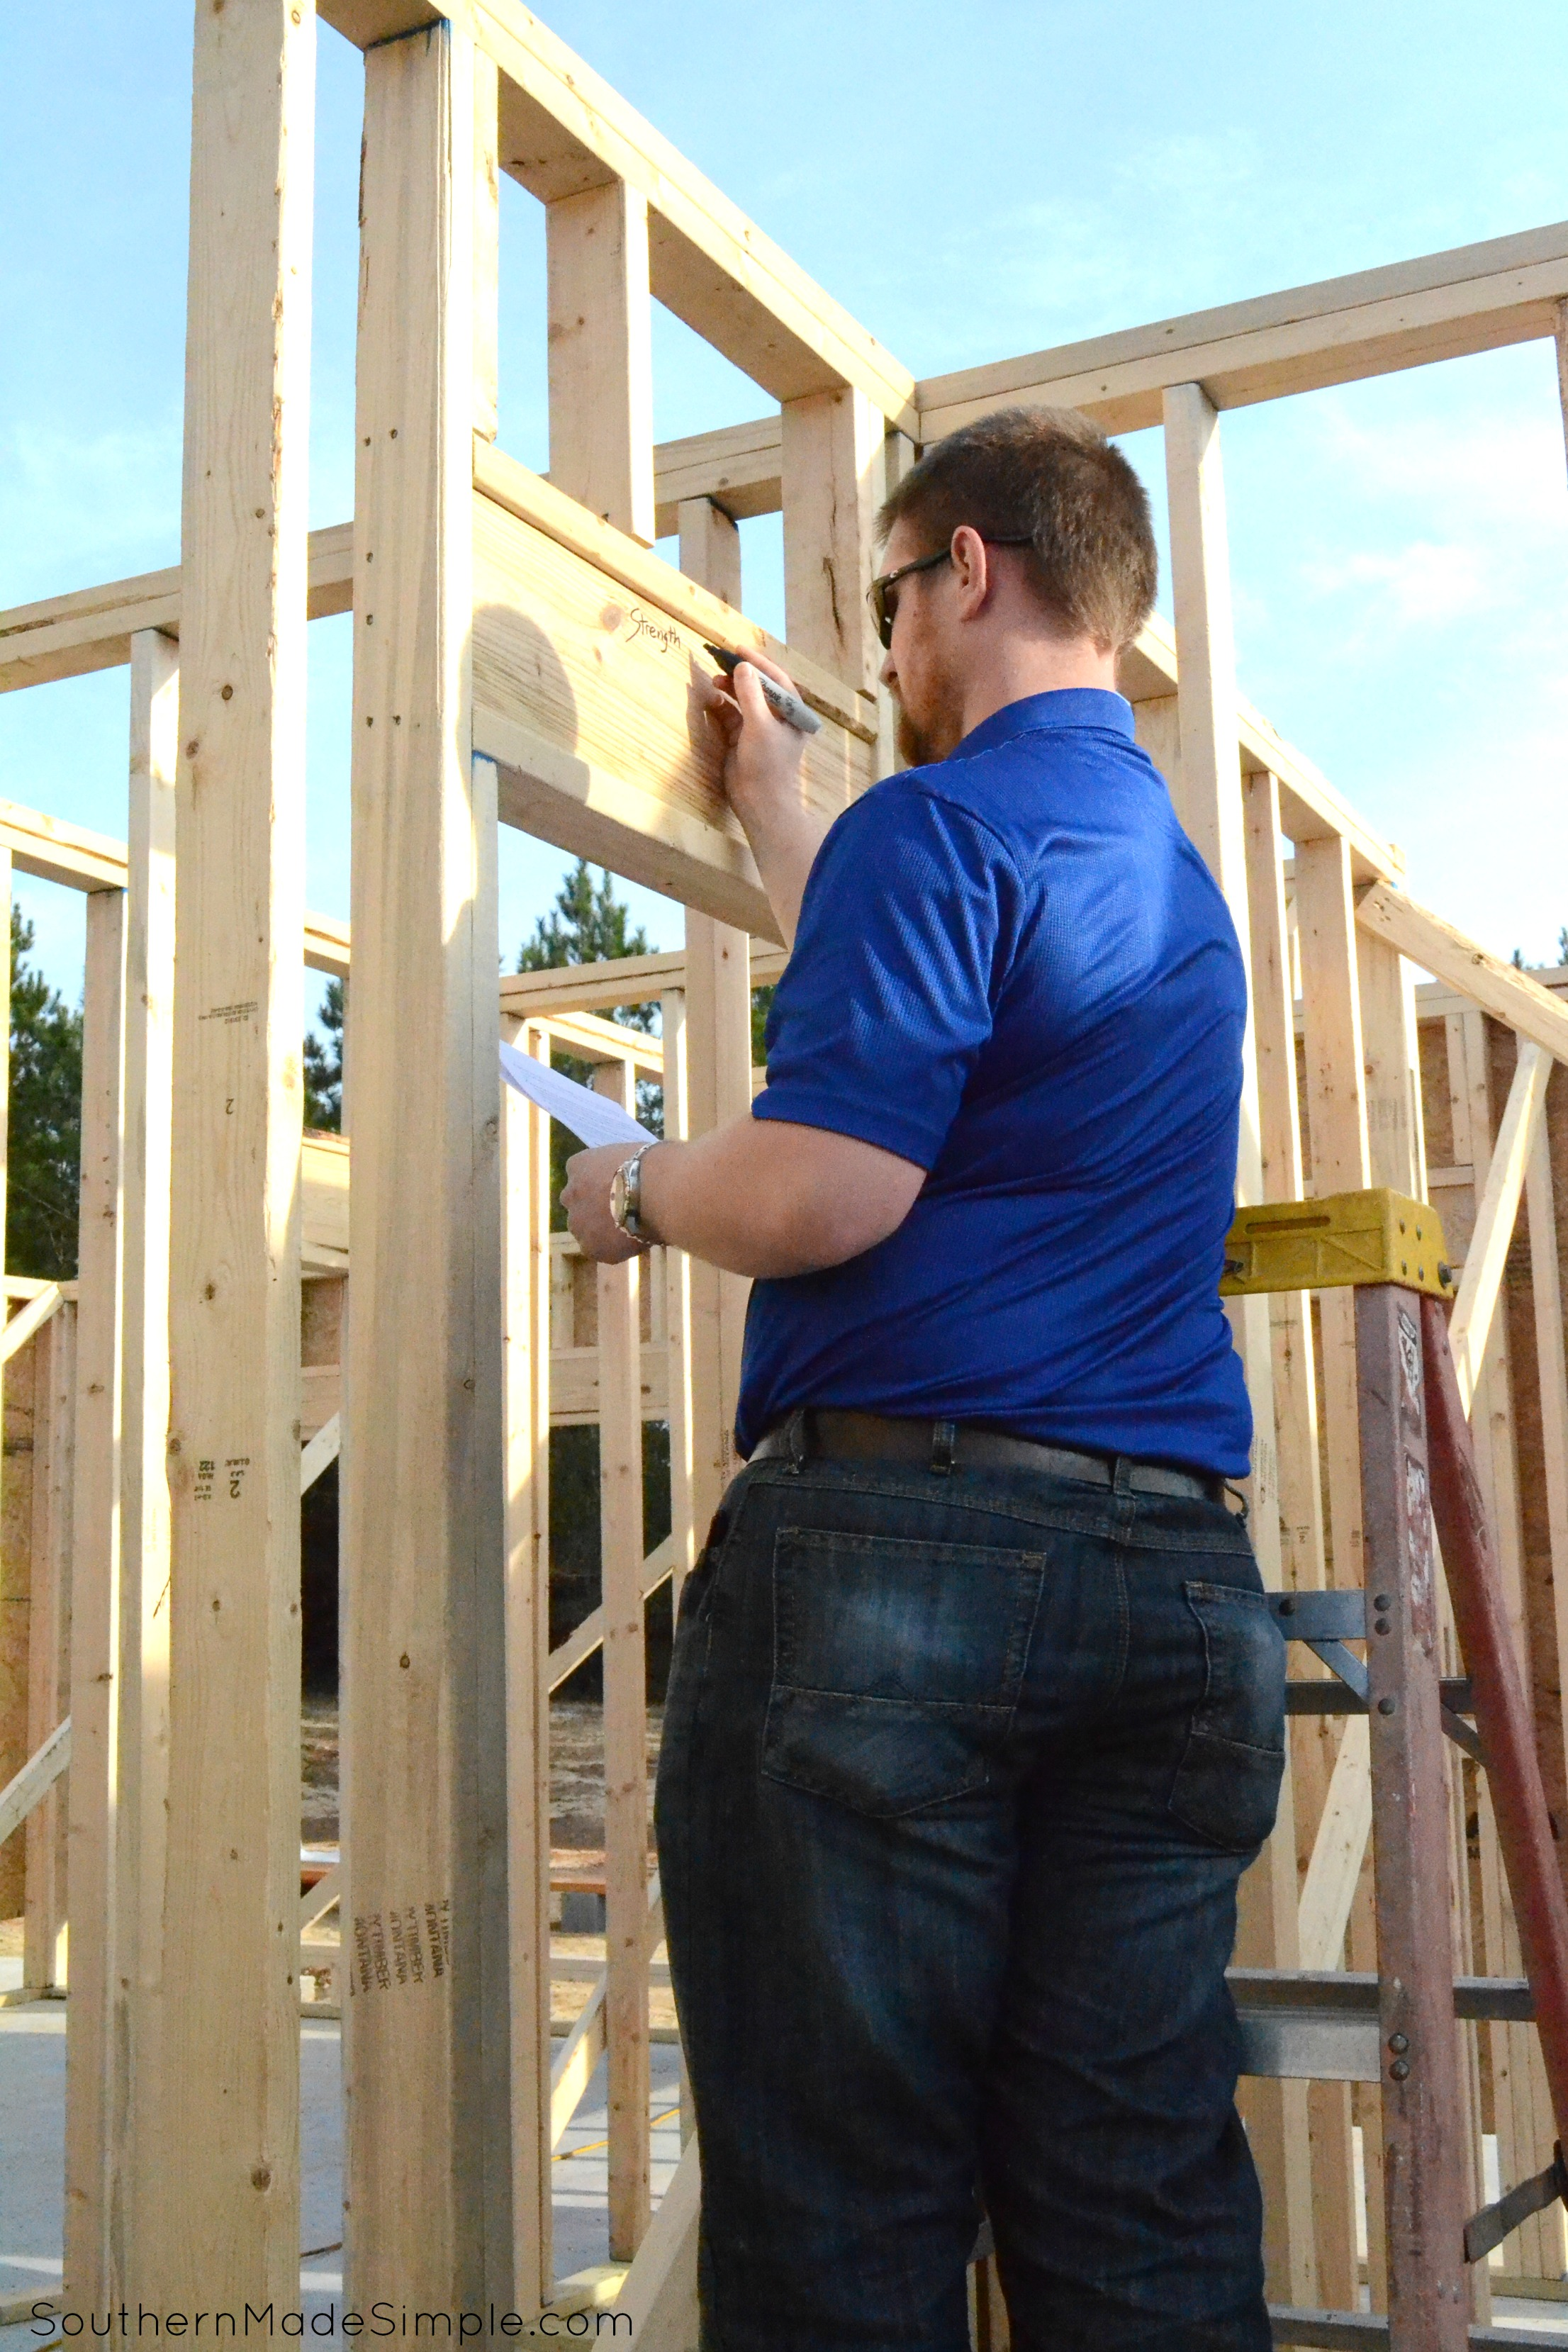 A Strong Foundation: Bible Verses for Building a Home - Southern